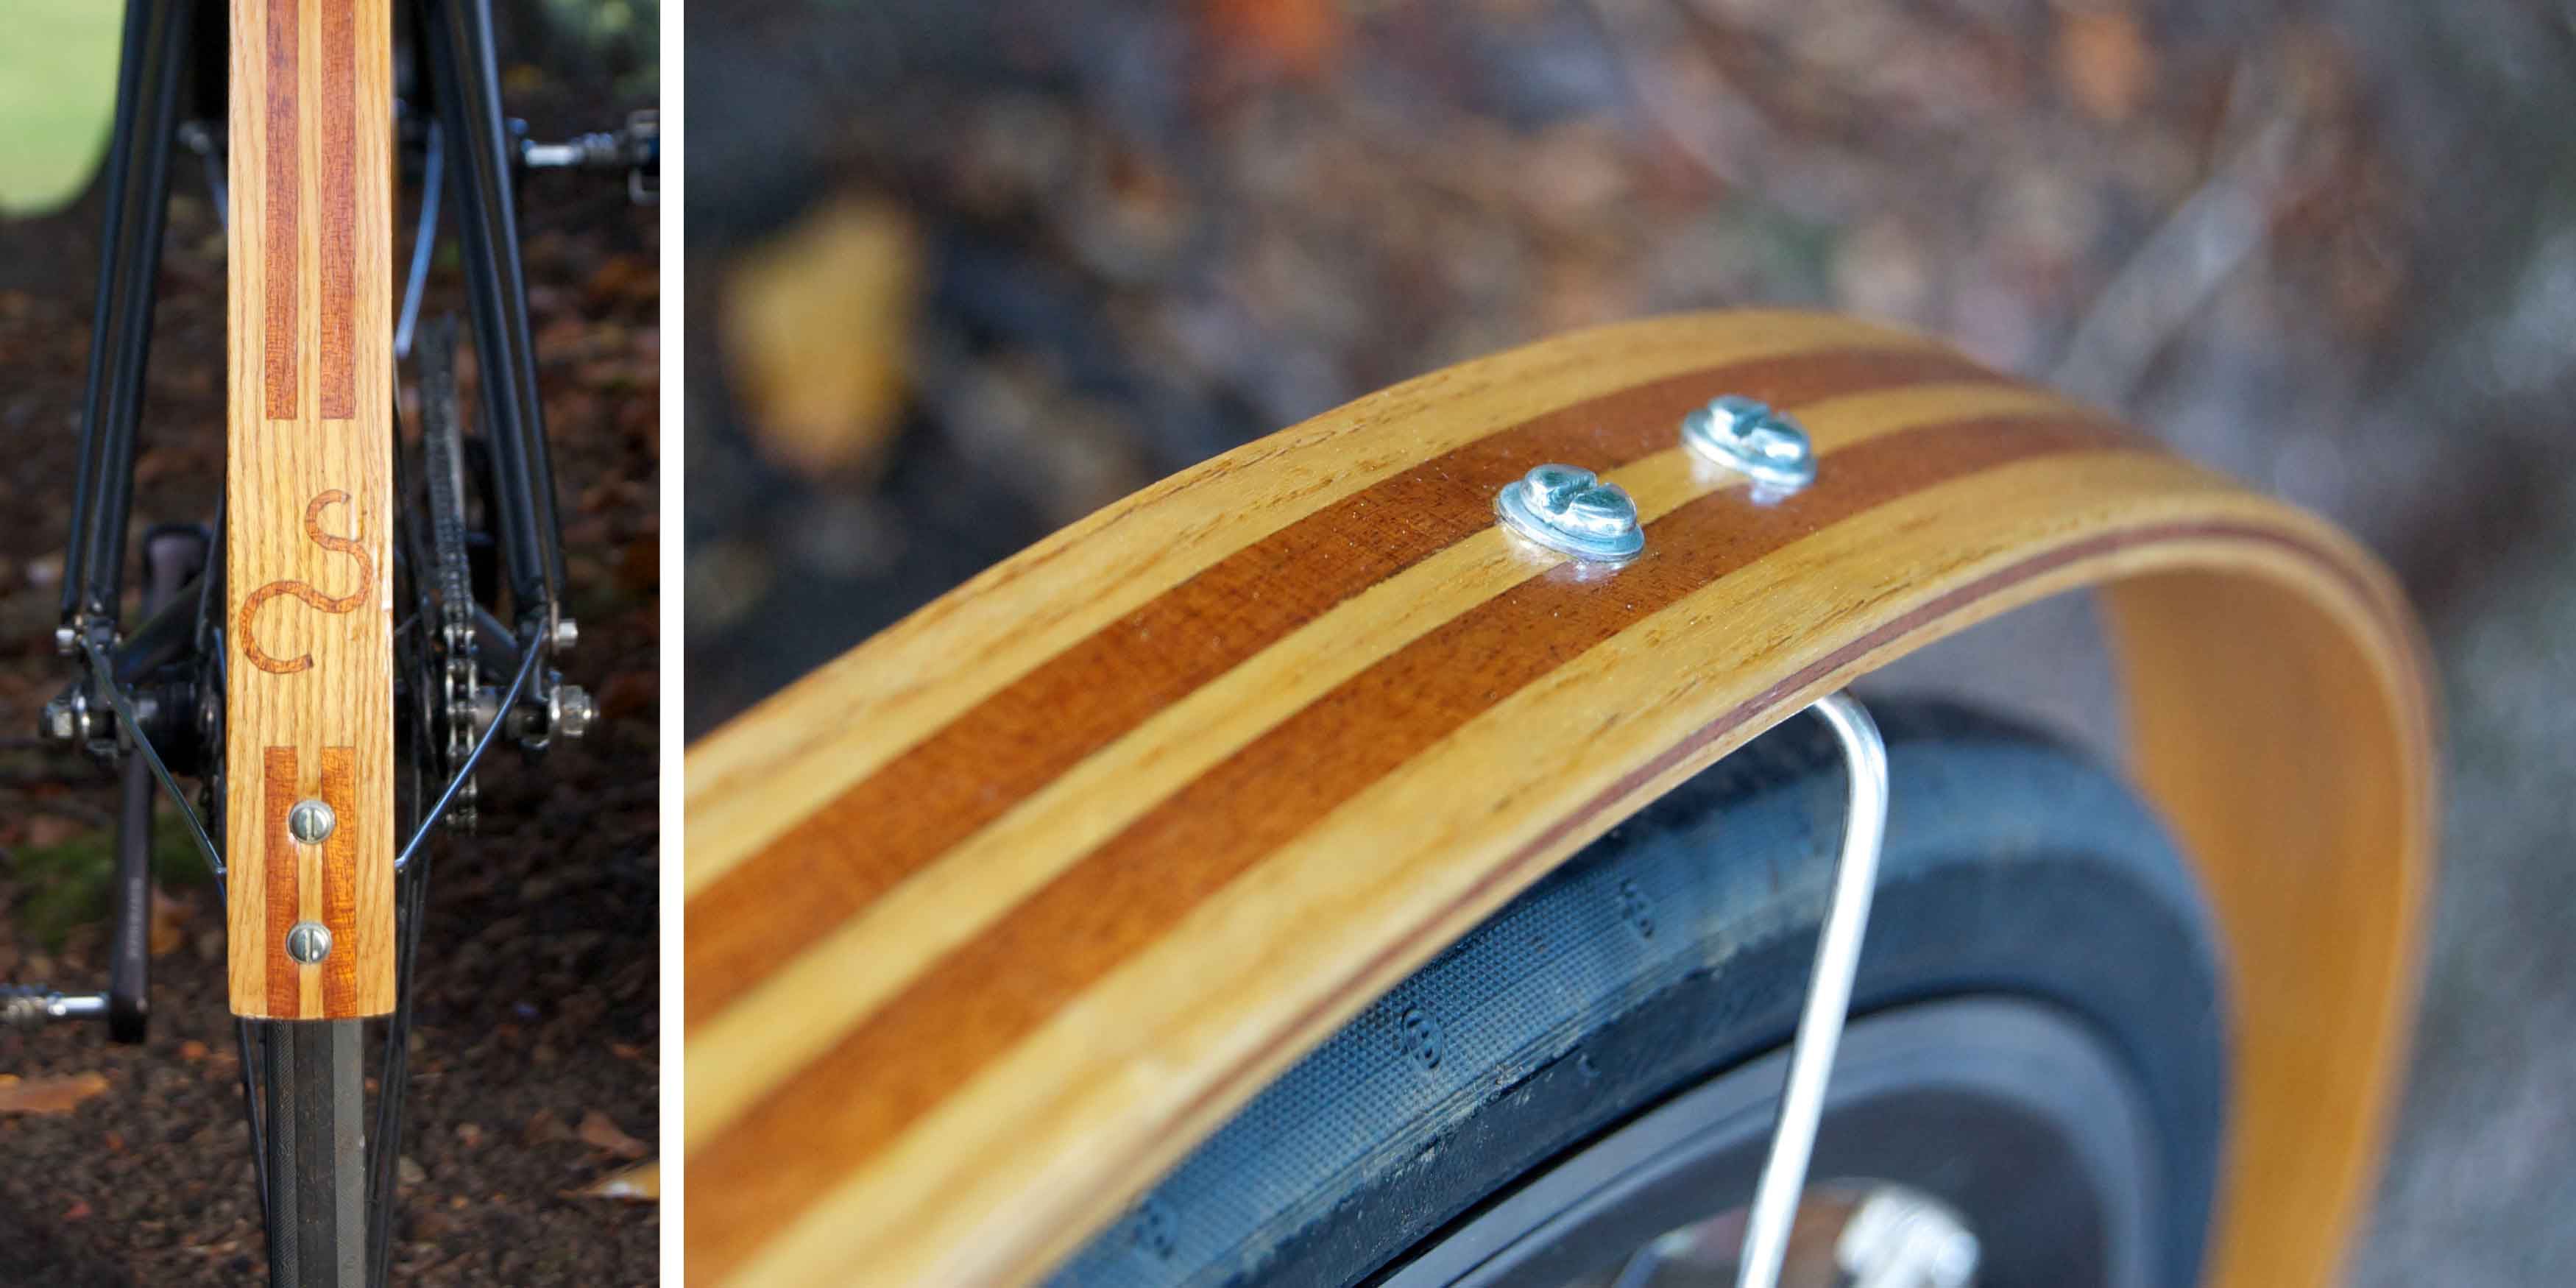 nottingham samuel critchlow sam hand made craft crafted wooden mudguards fenders ash mahogany inlay logo